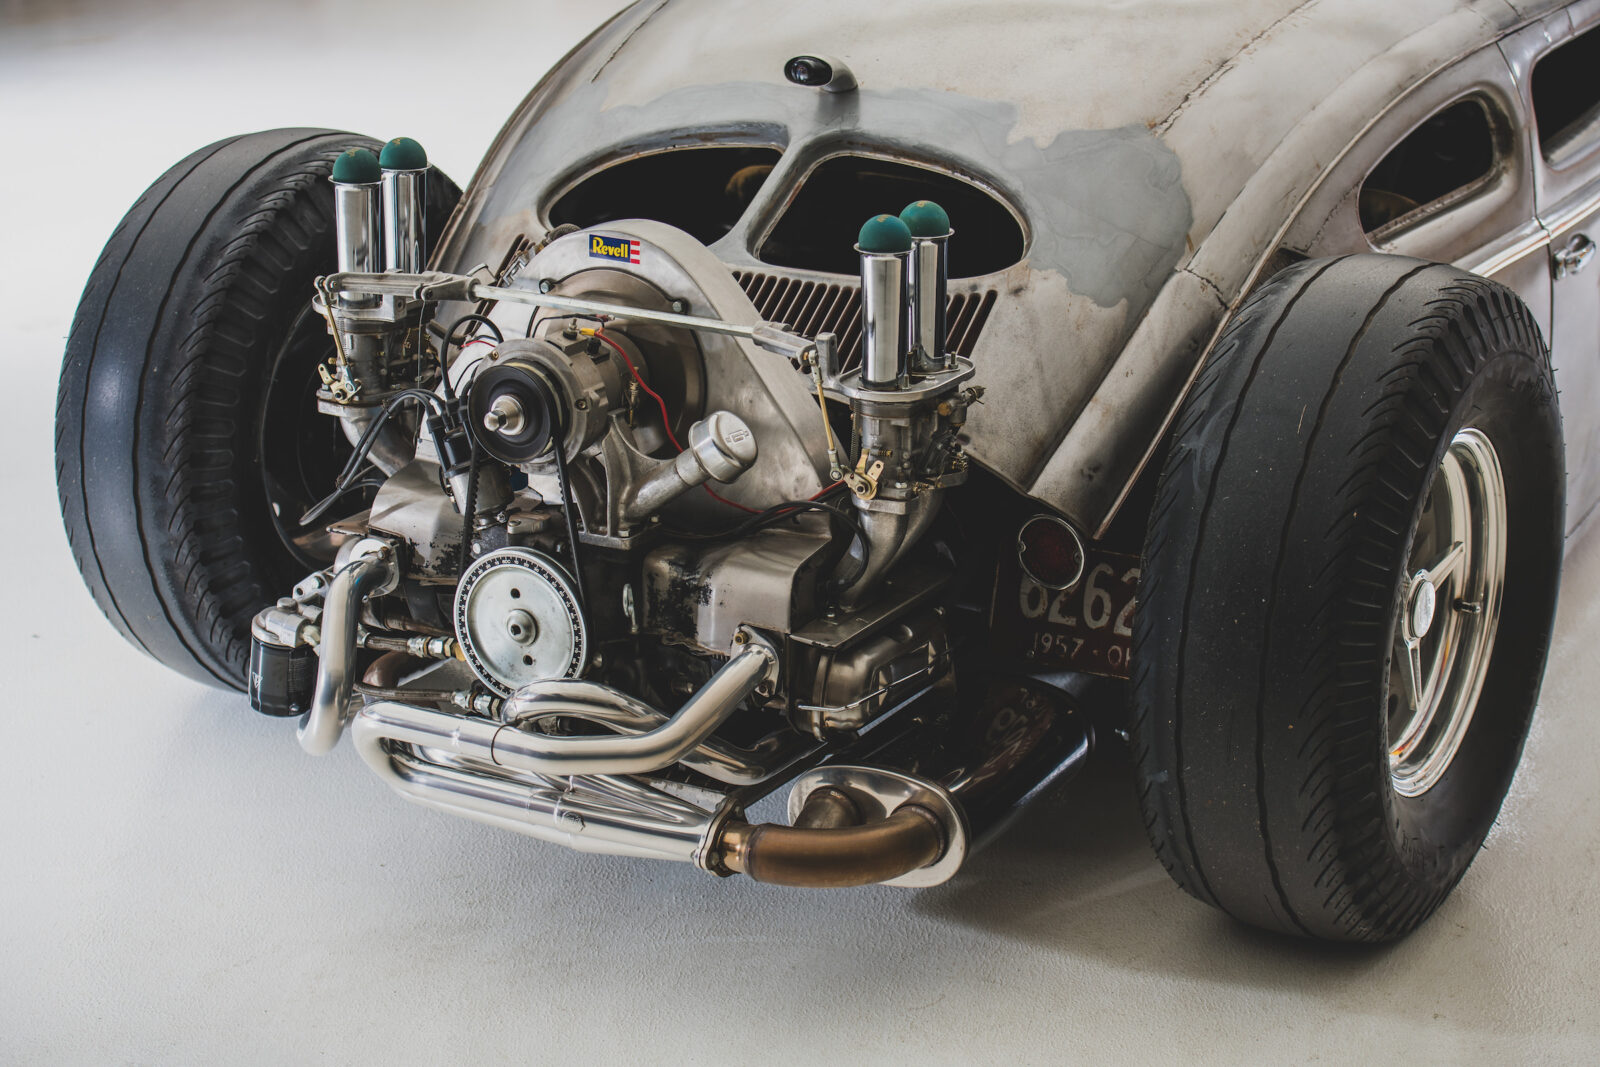 Volkswagen Beetle Outlaw Engine